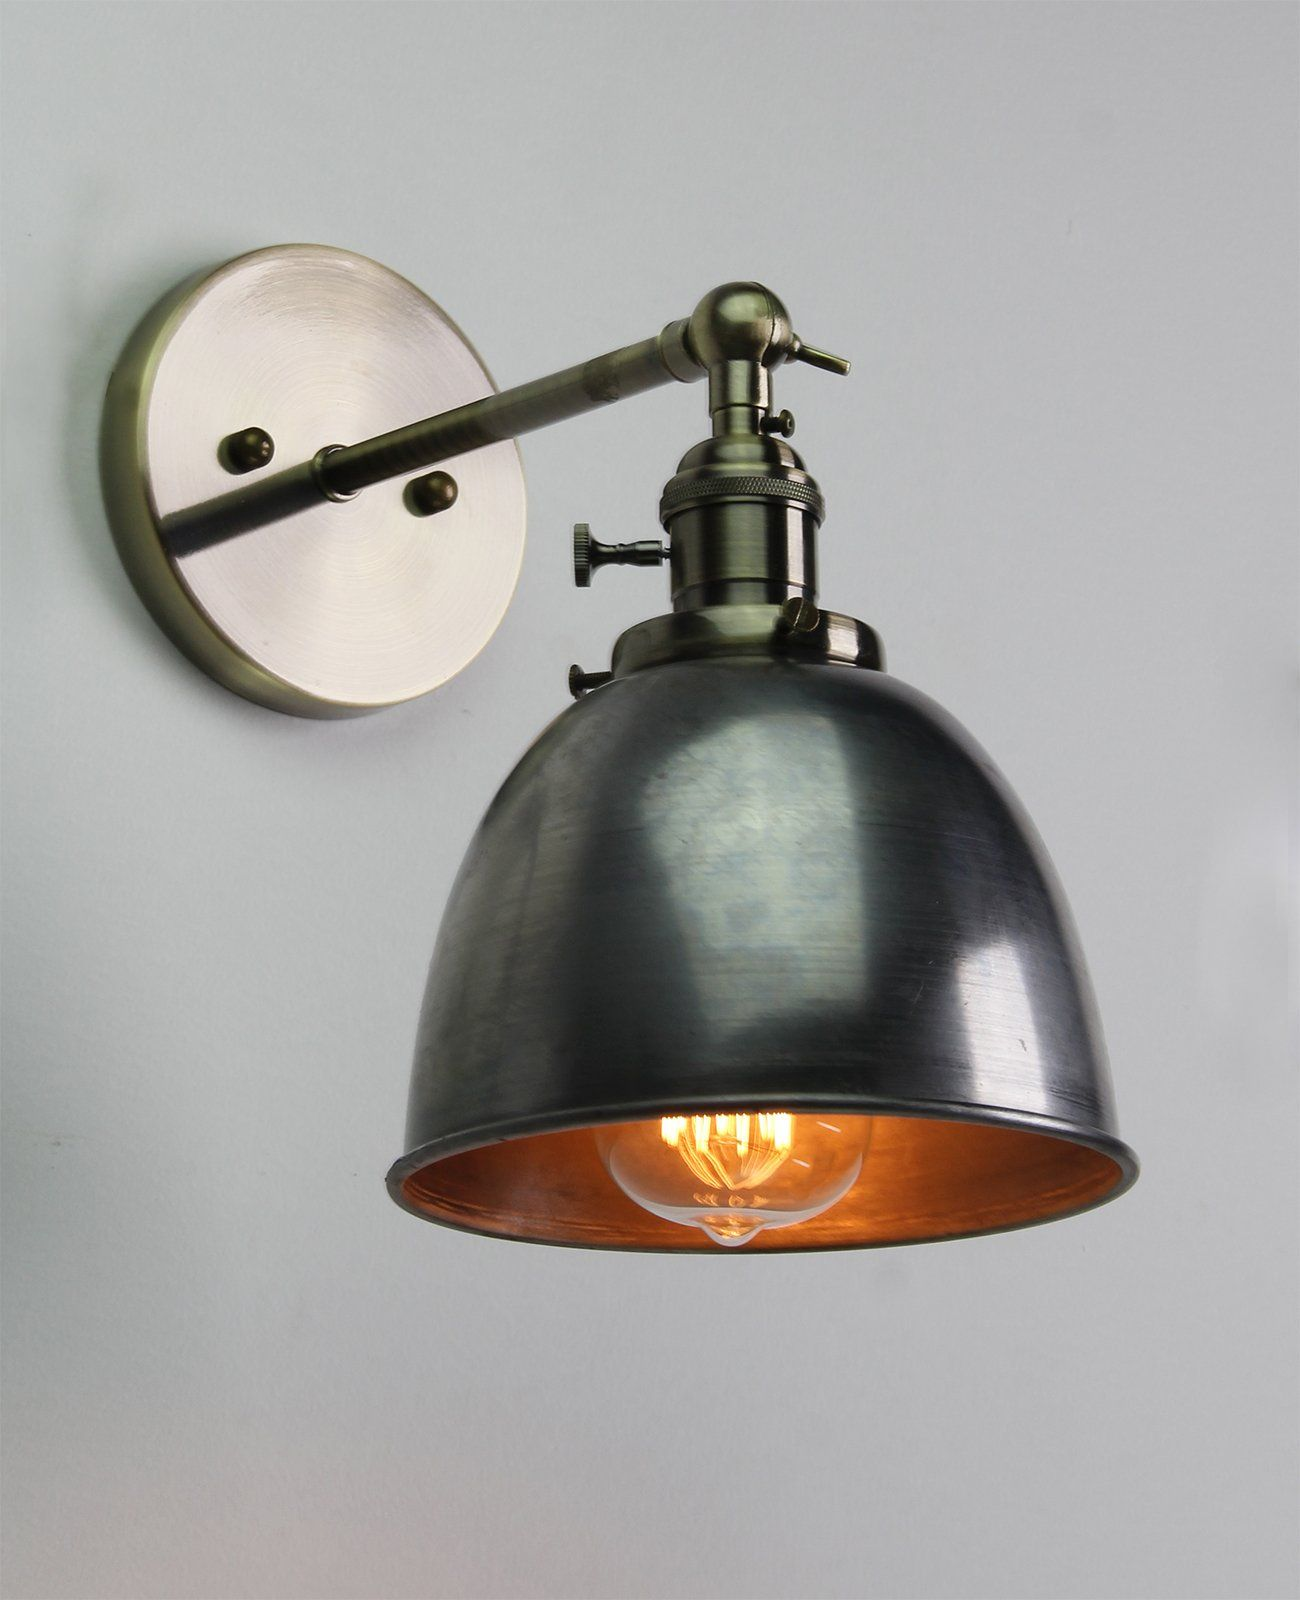 Modern Vintage Lights Buyee Modern Vintage Industrial Metal Shade Loft Coffee